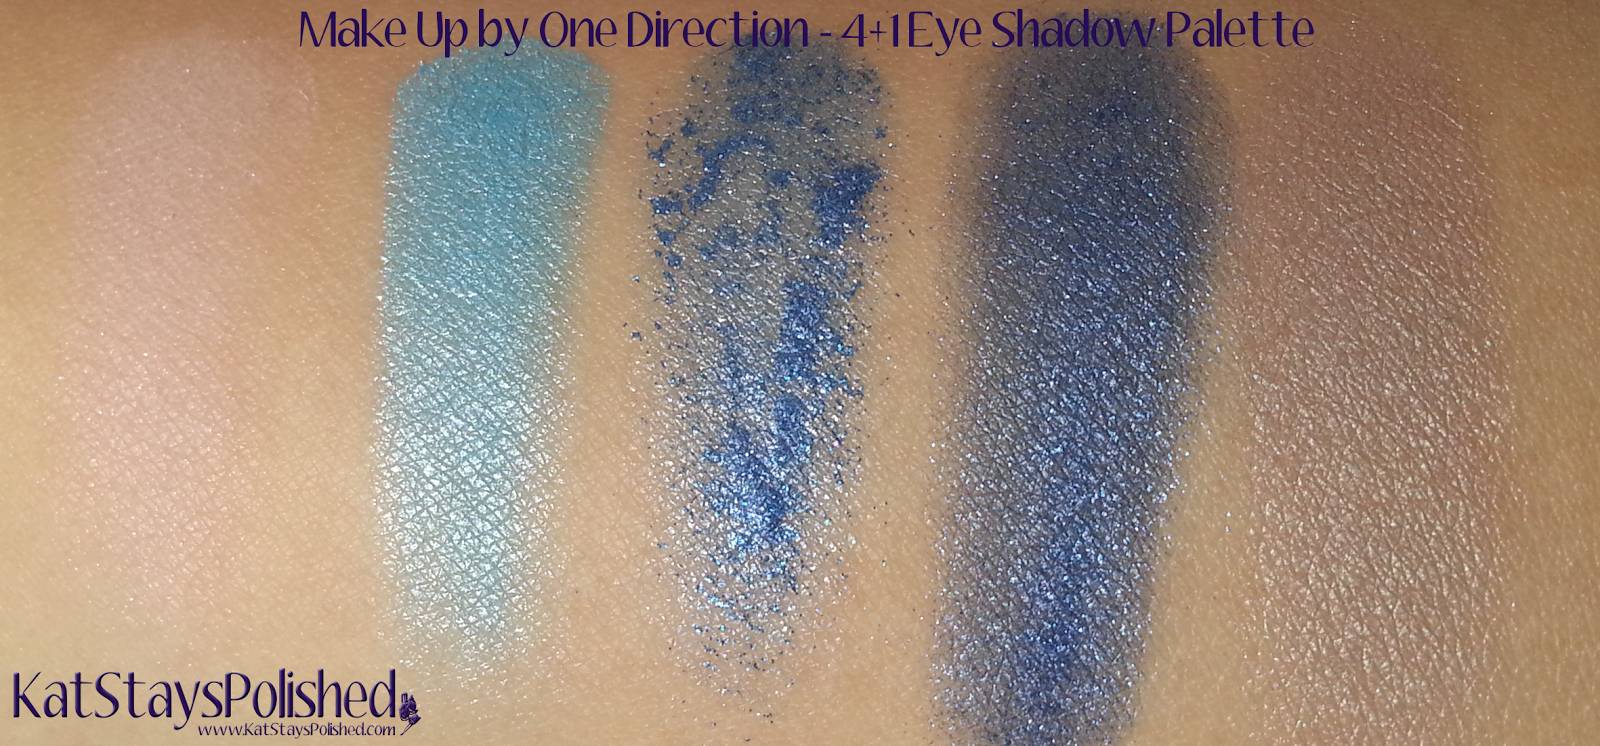 Make Up by One Direction - 4 + 1 Eye Shadow Palette Swatches | Kat Stays Polished